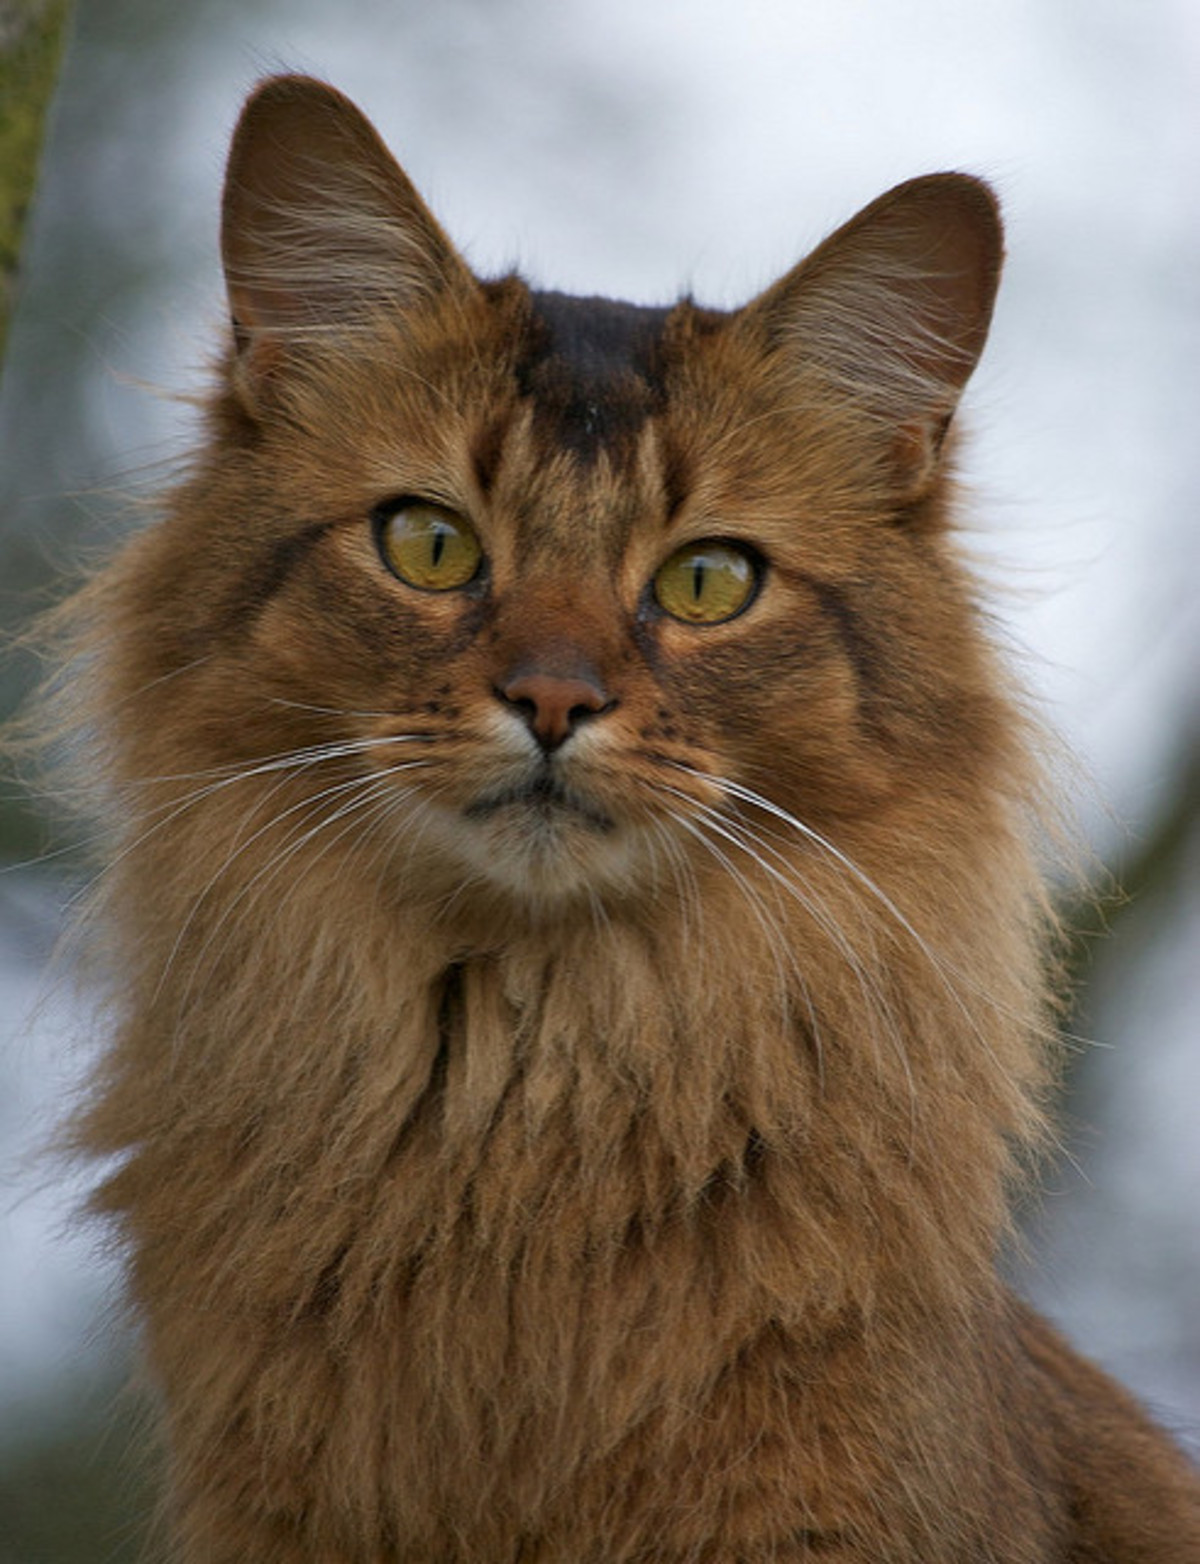 kitty spotlight: somali. It's thought that these cats have some Abyssinian in them. Their appearance, consisting of pointed ears and bushy tails, gives them the